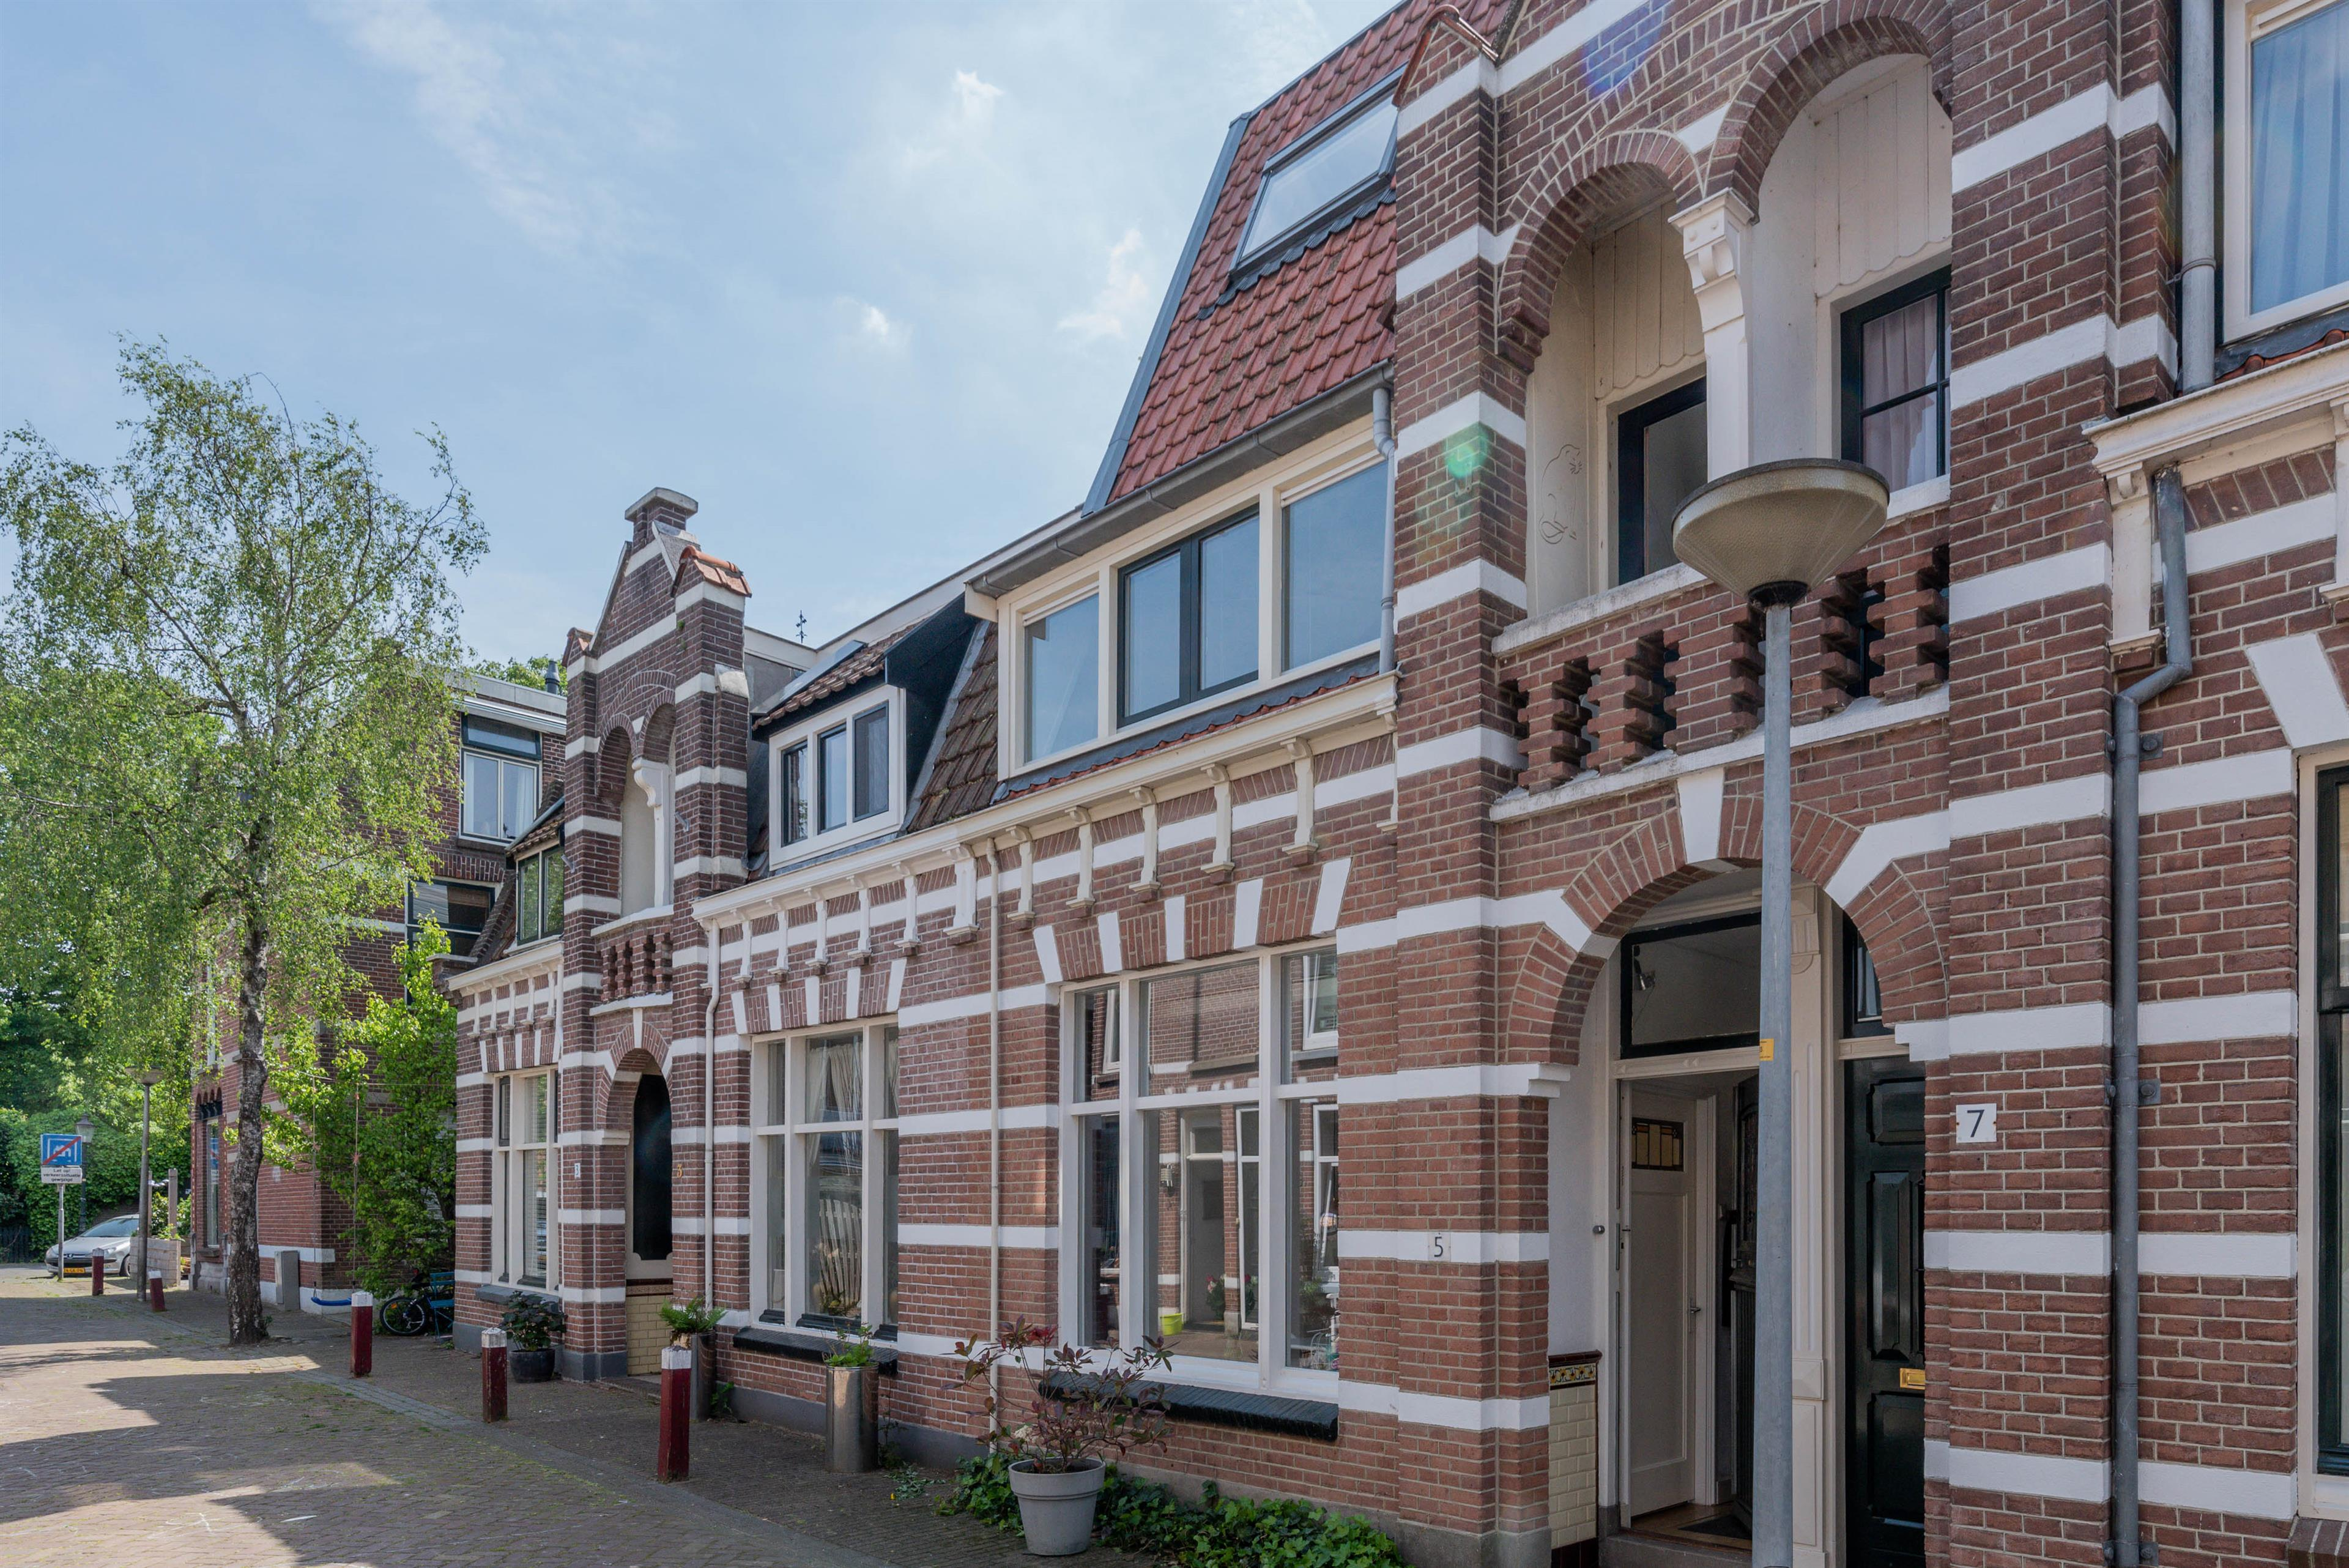 Herenstraat 5